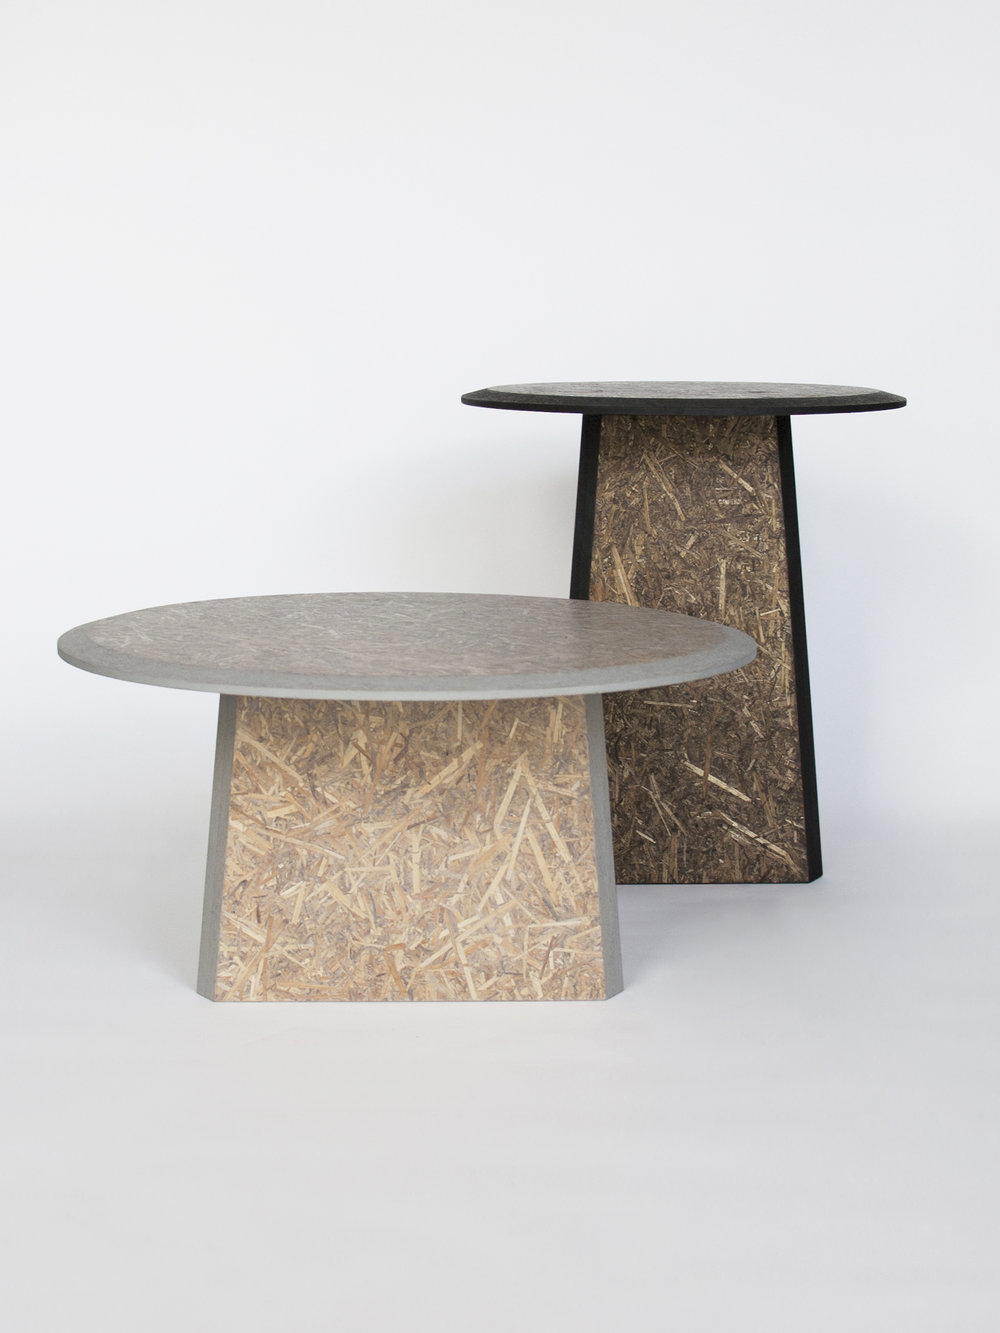 Straw sidetables -gray and black_front view 1- David Deksen Design.jpg